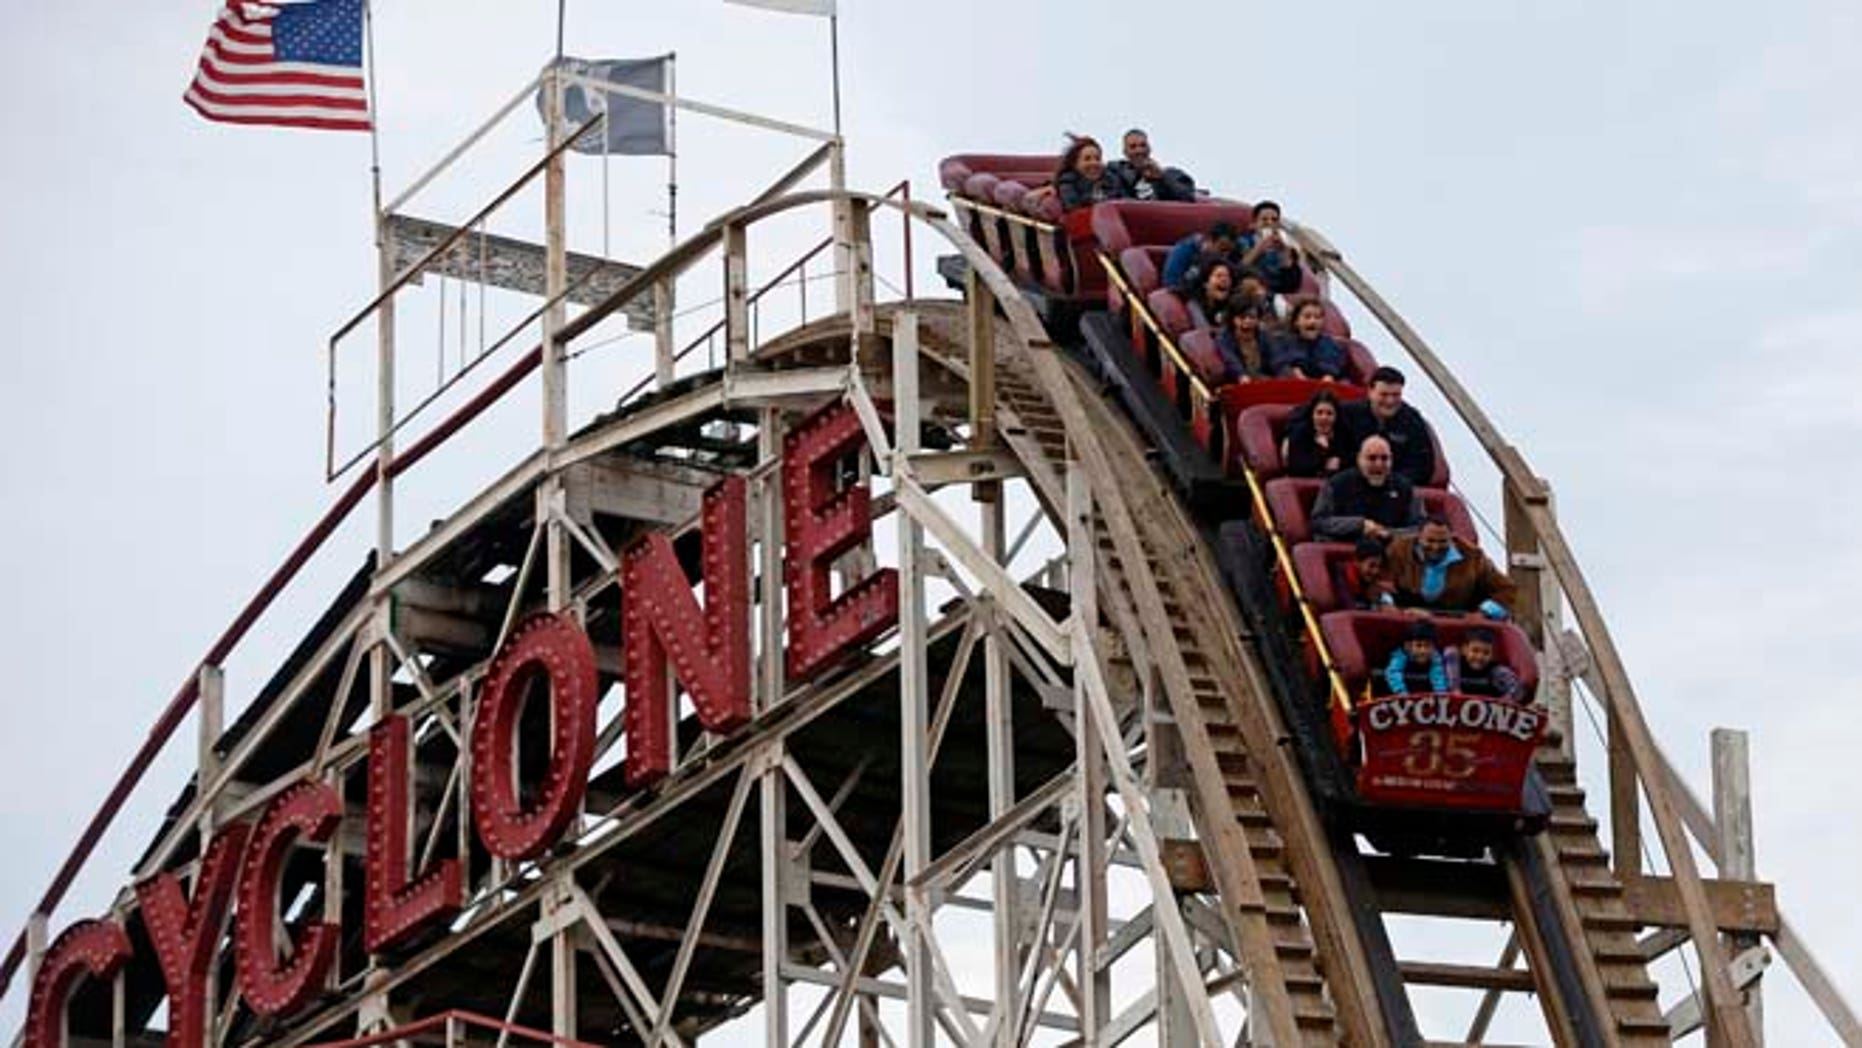 """Oct. 27, 2012: People ride the famous wooden roller coaster """"Cyclone"""", at Coney Island, New York."""